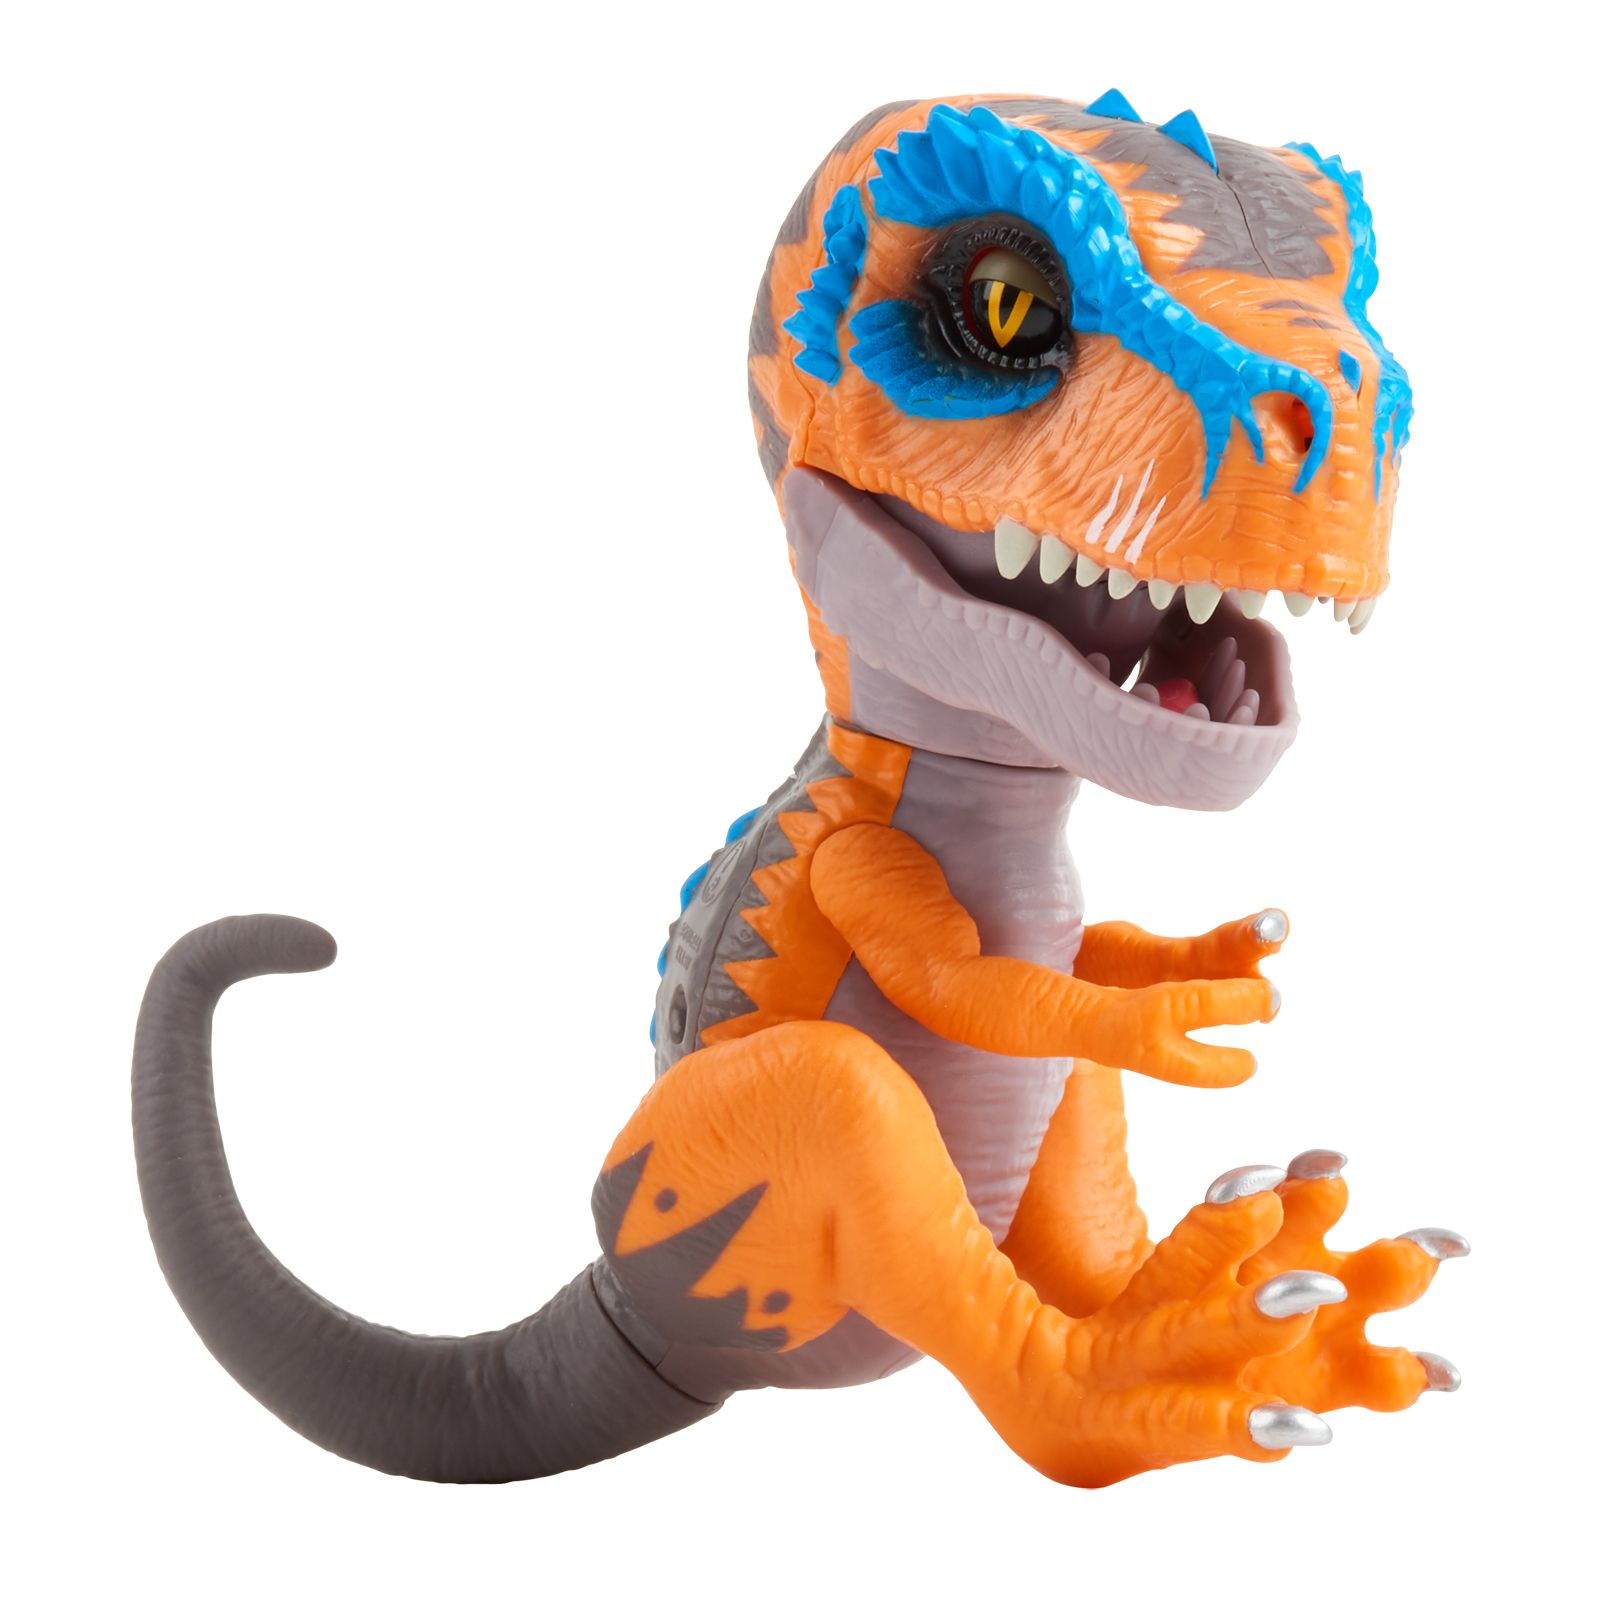 WowWee Untamed Raptor by Fingerlings Interactive Collectible Baby Dinosaur